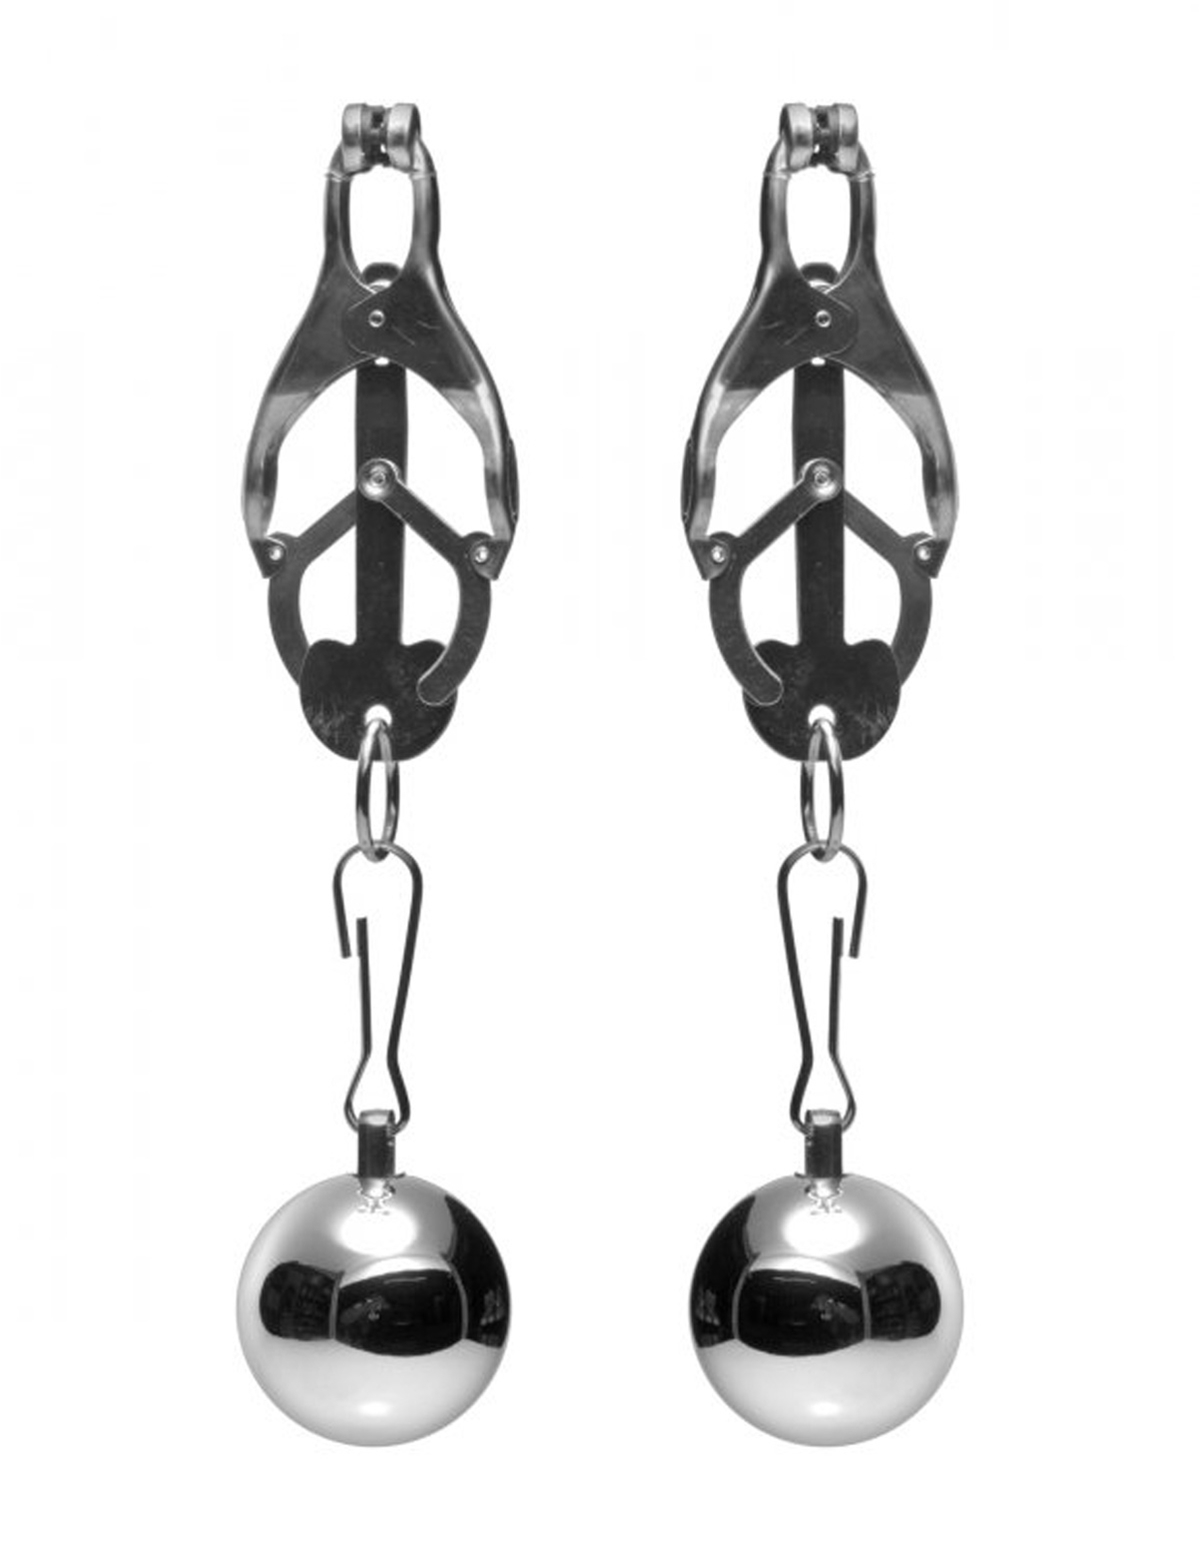 Master Series Deviants Nipple Clamps